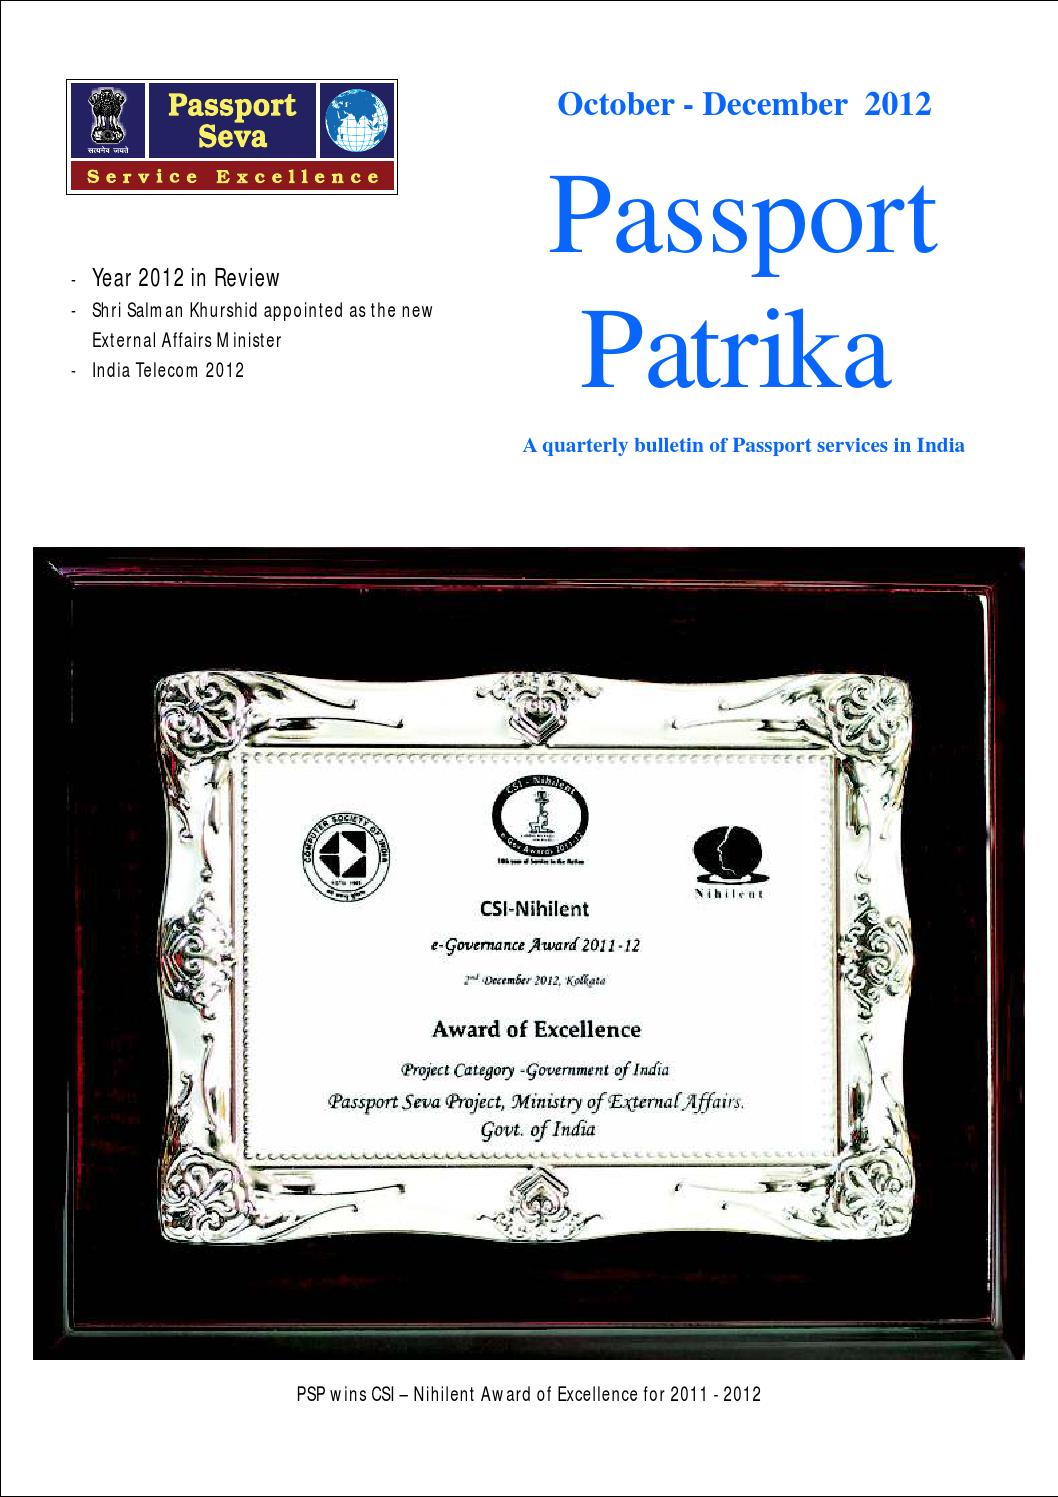 Passport Patrika | October - December 2012